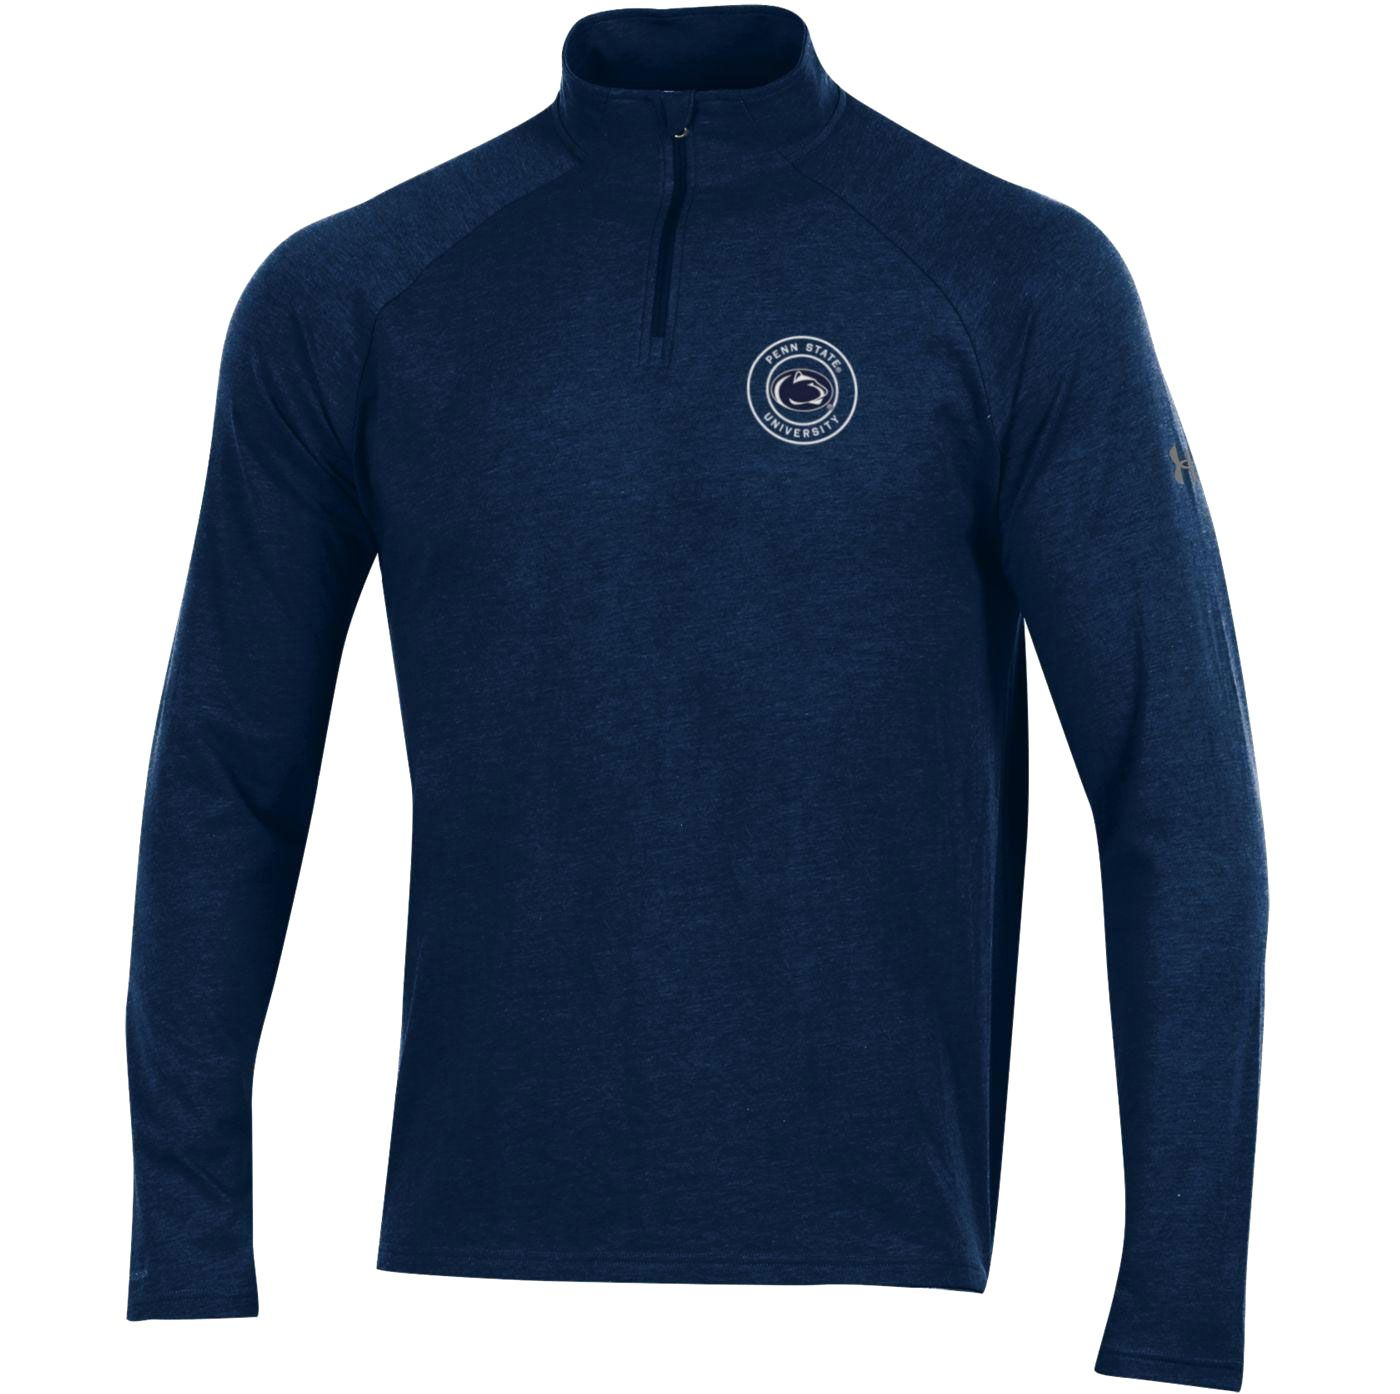 Under Armour Men's Penn State Nittany Lions Blue Charged Cotton Quarter-Zip Shirt